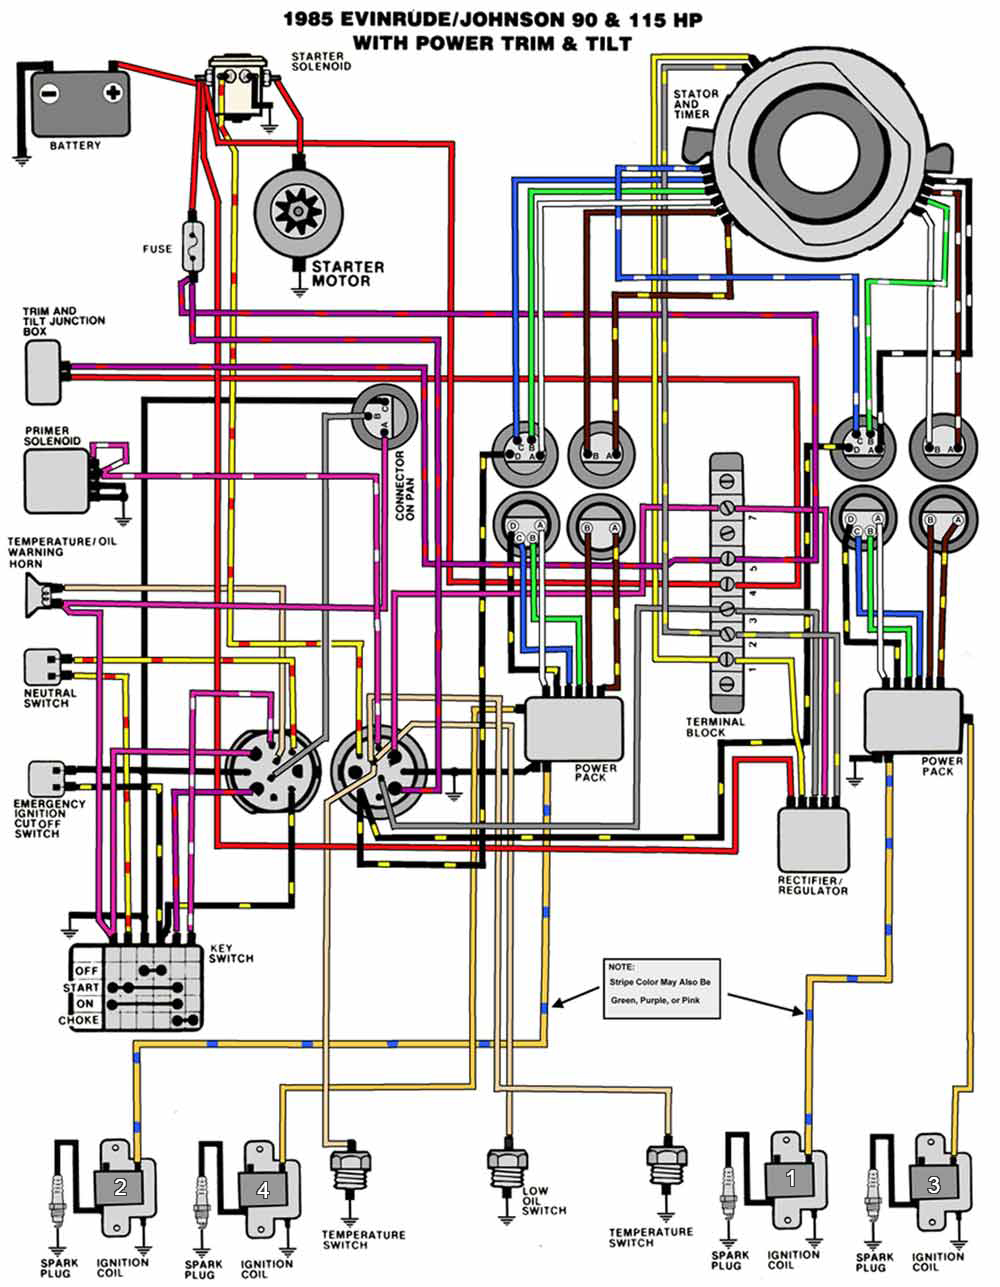 hight resolution of 1982 35 hp johnson outboard wiring harness free picture wiringevinrude johnson outboard wiring diagrams mastertech marine